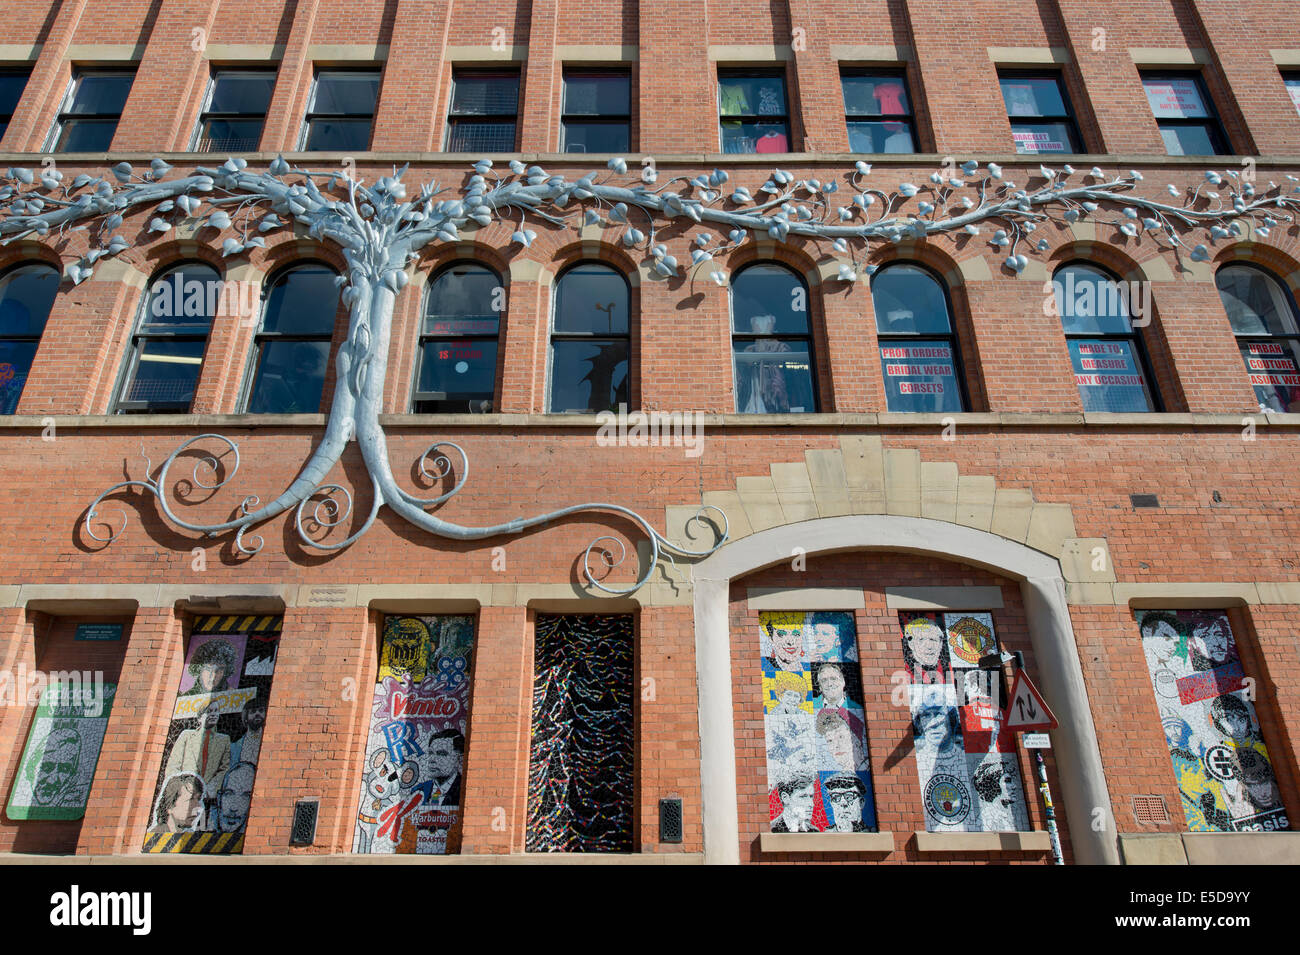 The Tib Street side of Afflecks (formerly Affleck's Palace) indoor market building located in the Northern Quarter - Stock Image